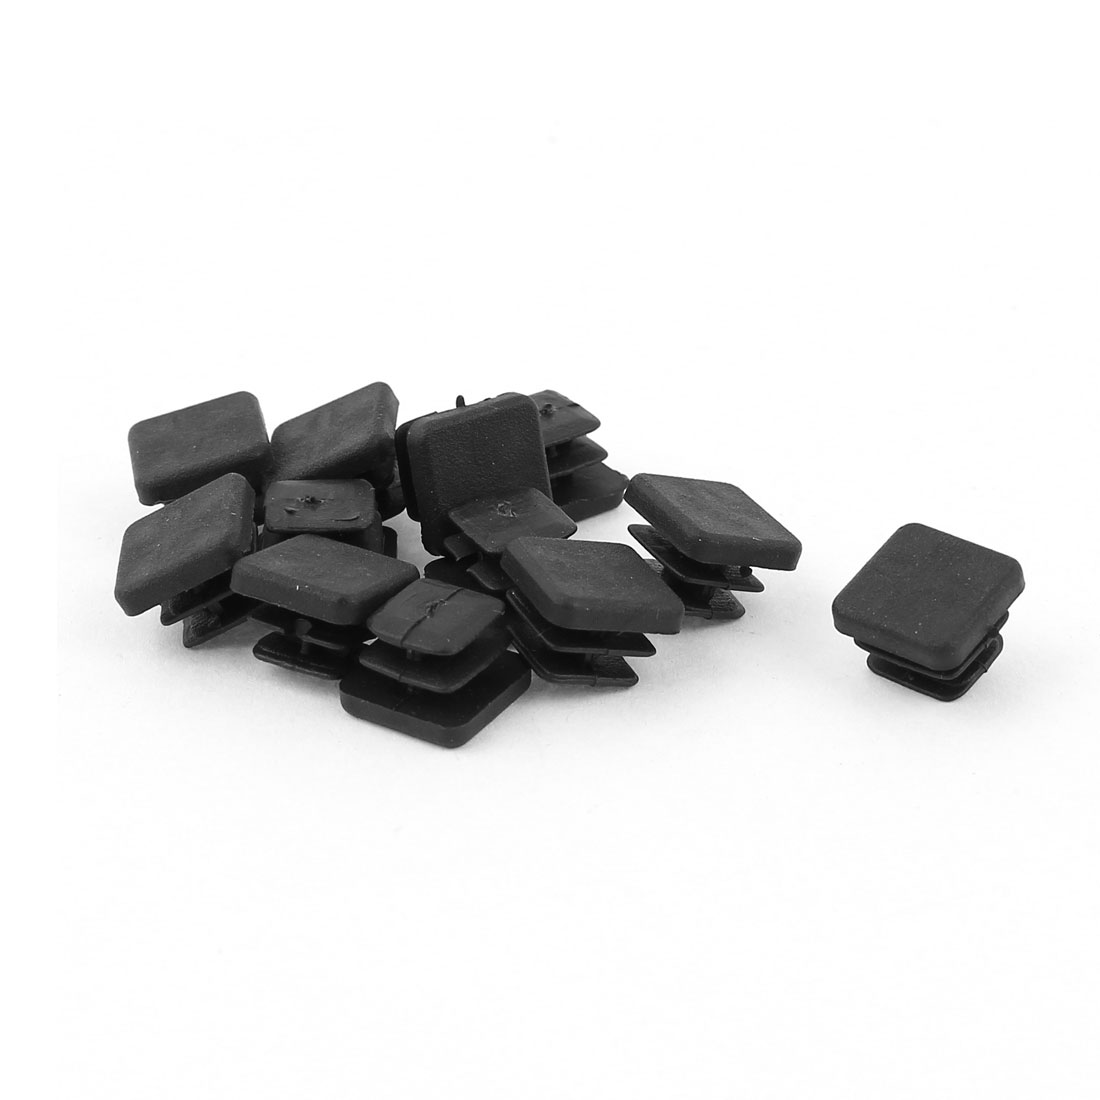 12 Pcs Black Plastic Square Blanking End Caps Tubing Tube Cover Inserts 10mm x 10mm